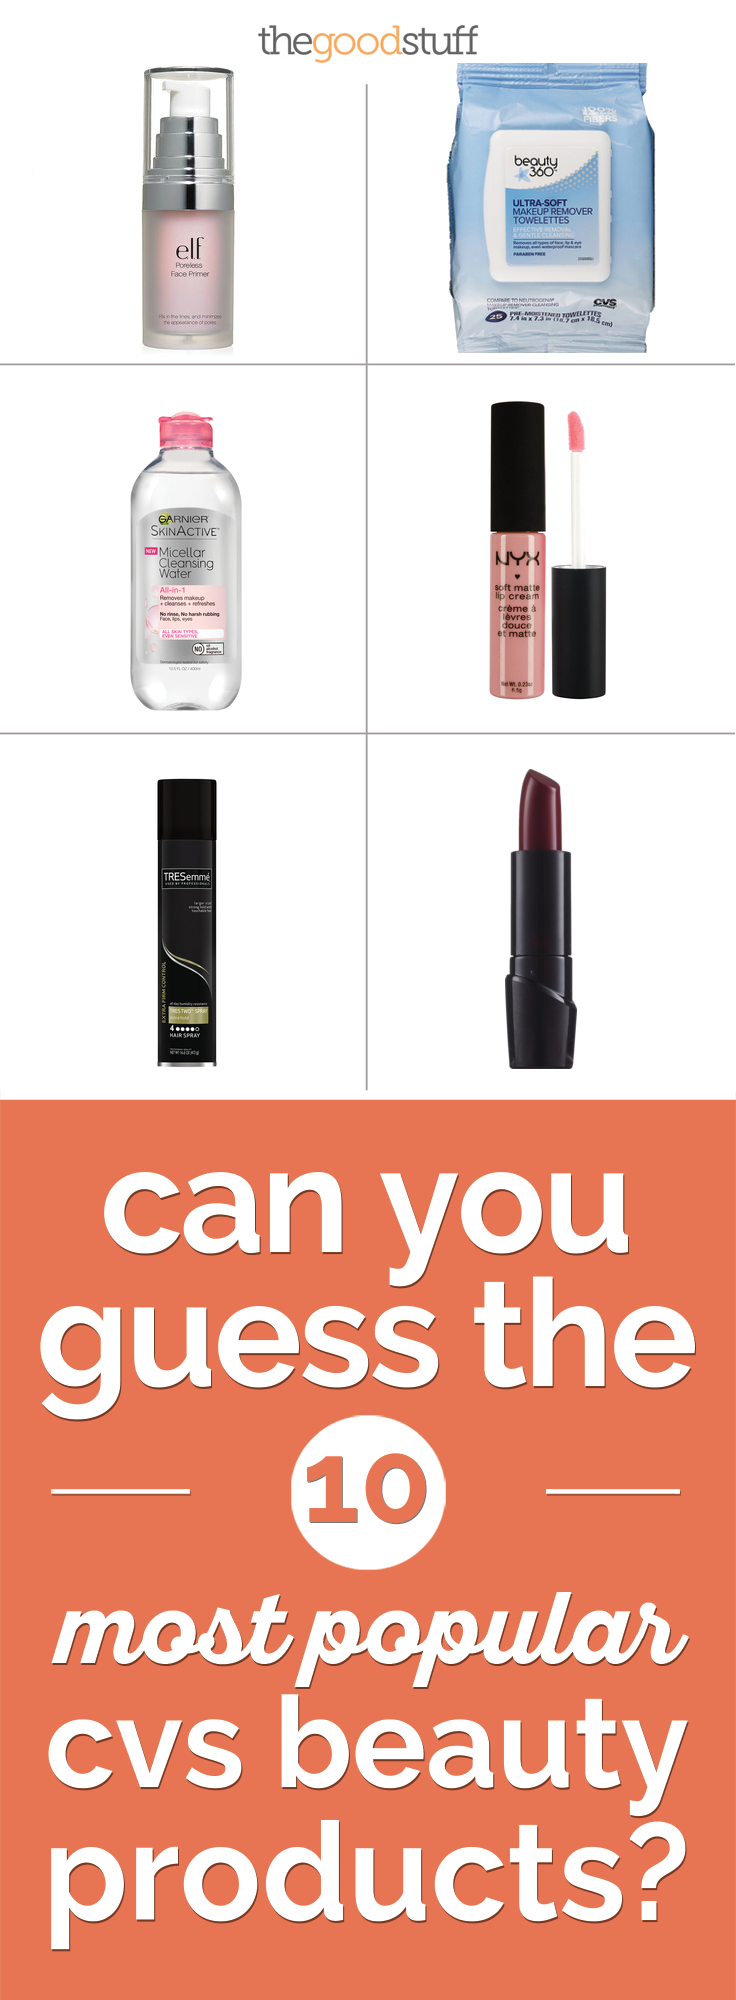 can you guess the 10 most popular cvs beauty products